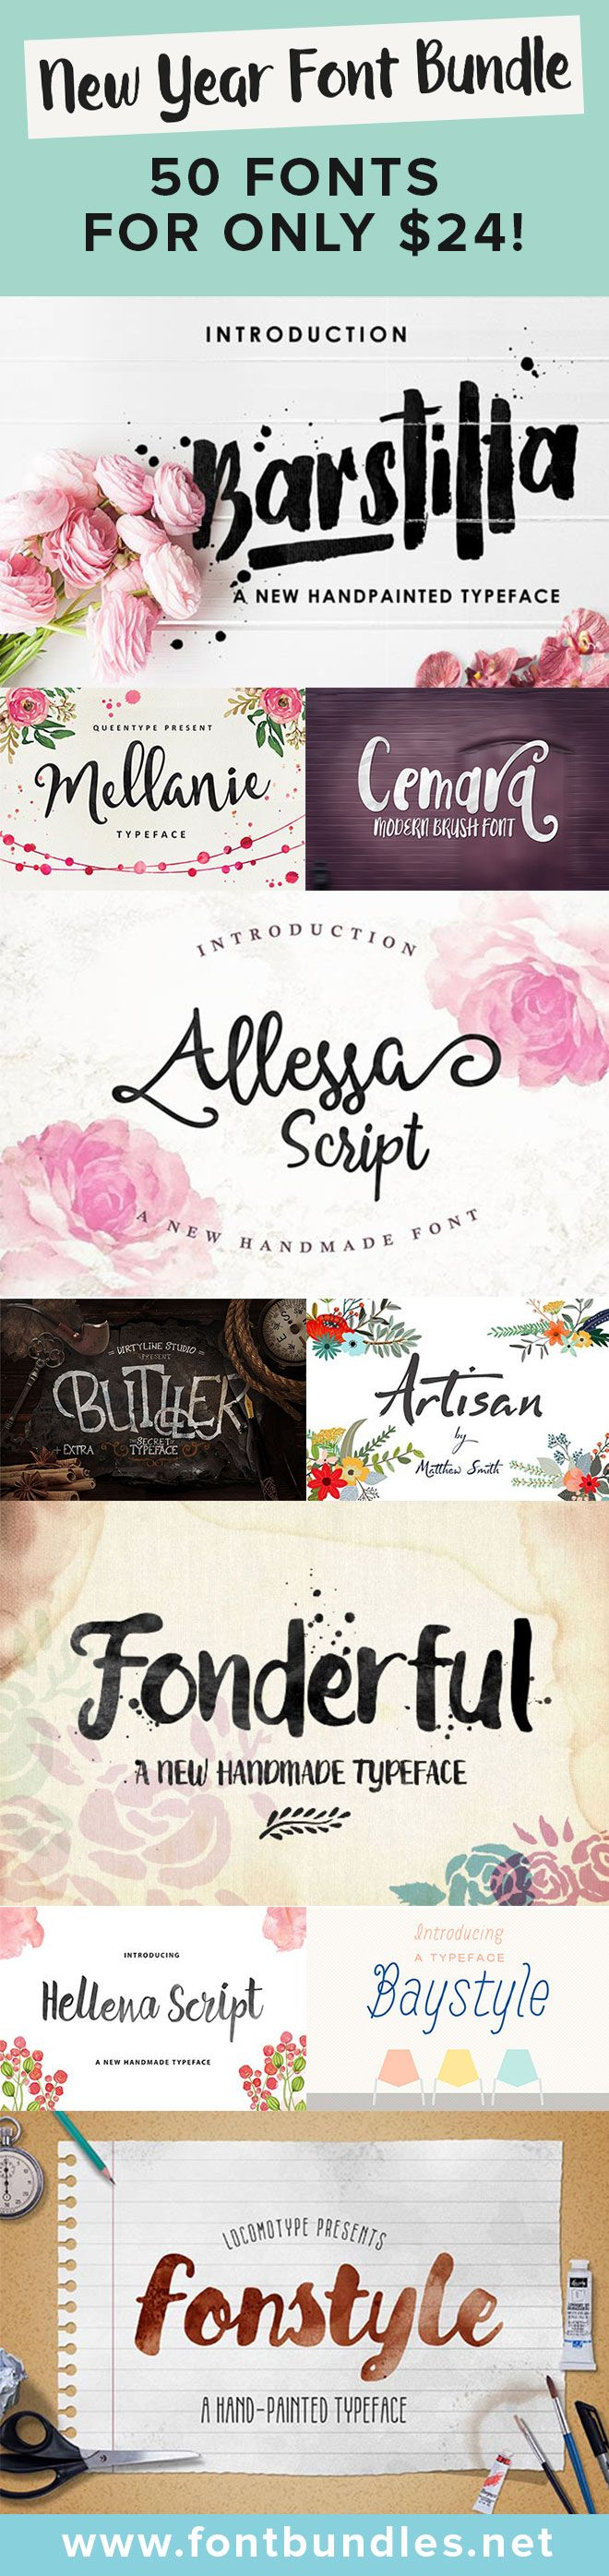 Check out at some of the beautiful fonts you will get in this New Year font bundle. 50 gorgeous fonts for only $24. What a steal! Click here to find out more.